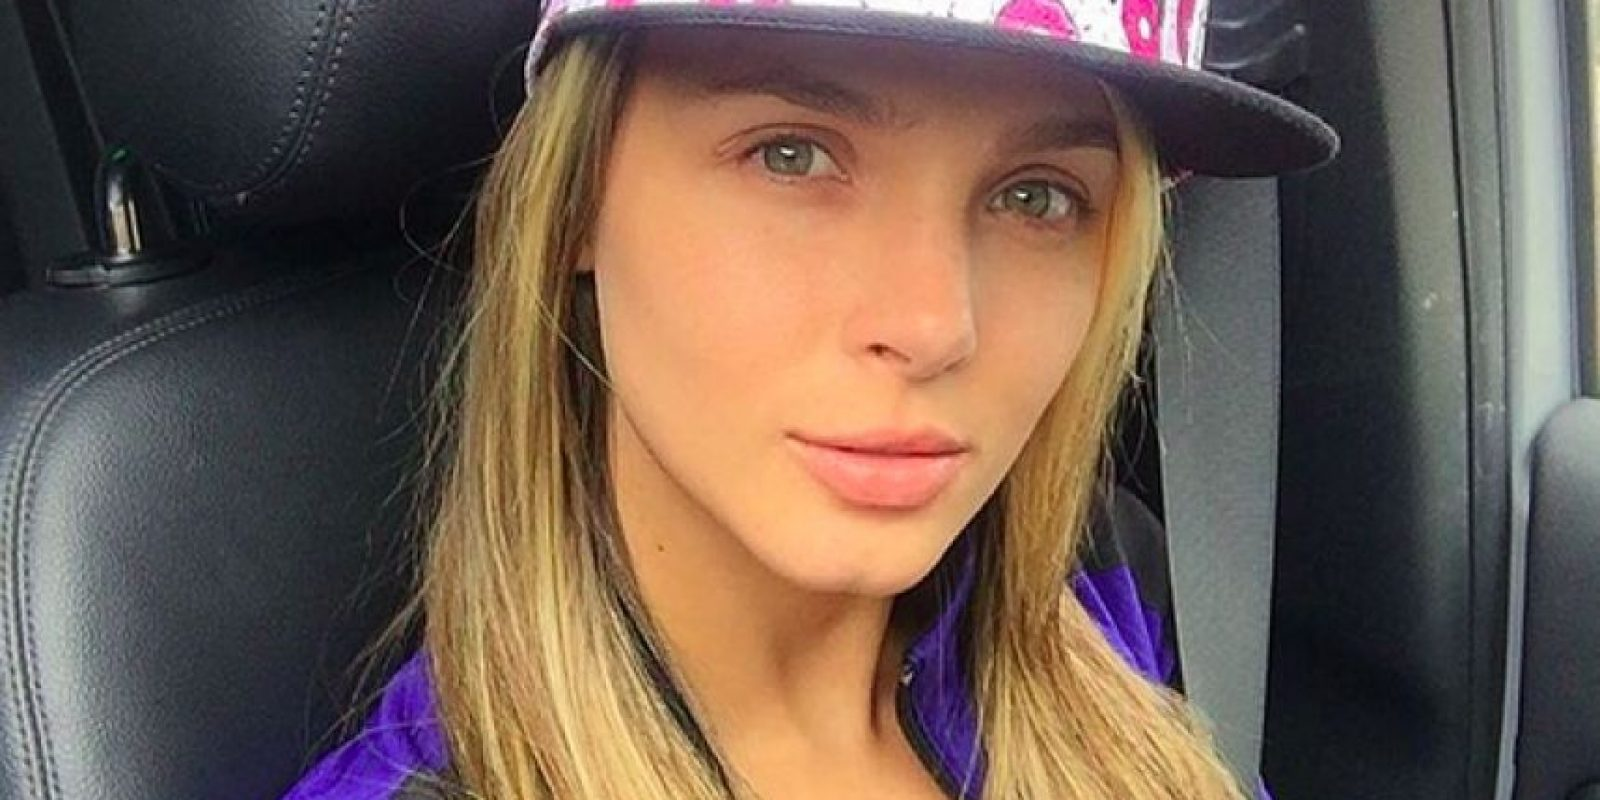 Selfie Young Marianne Argy naked photo 2017